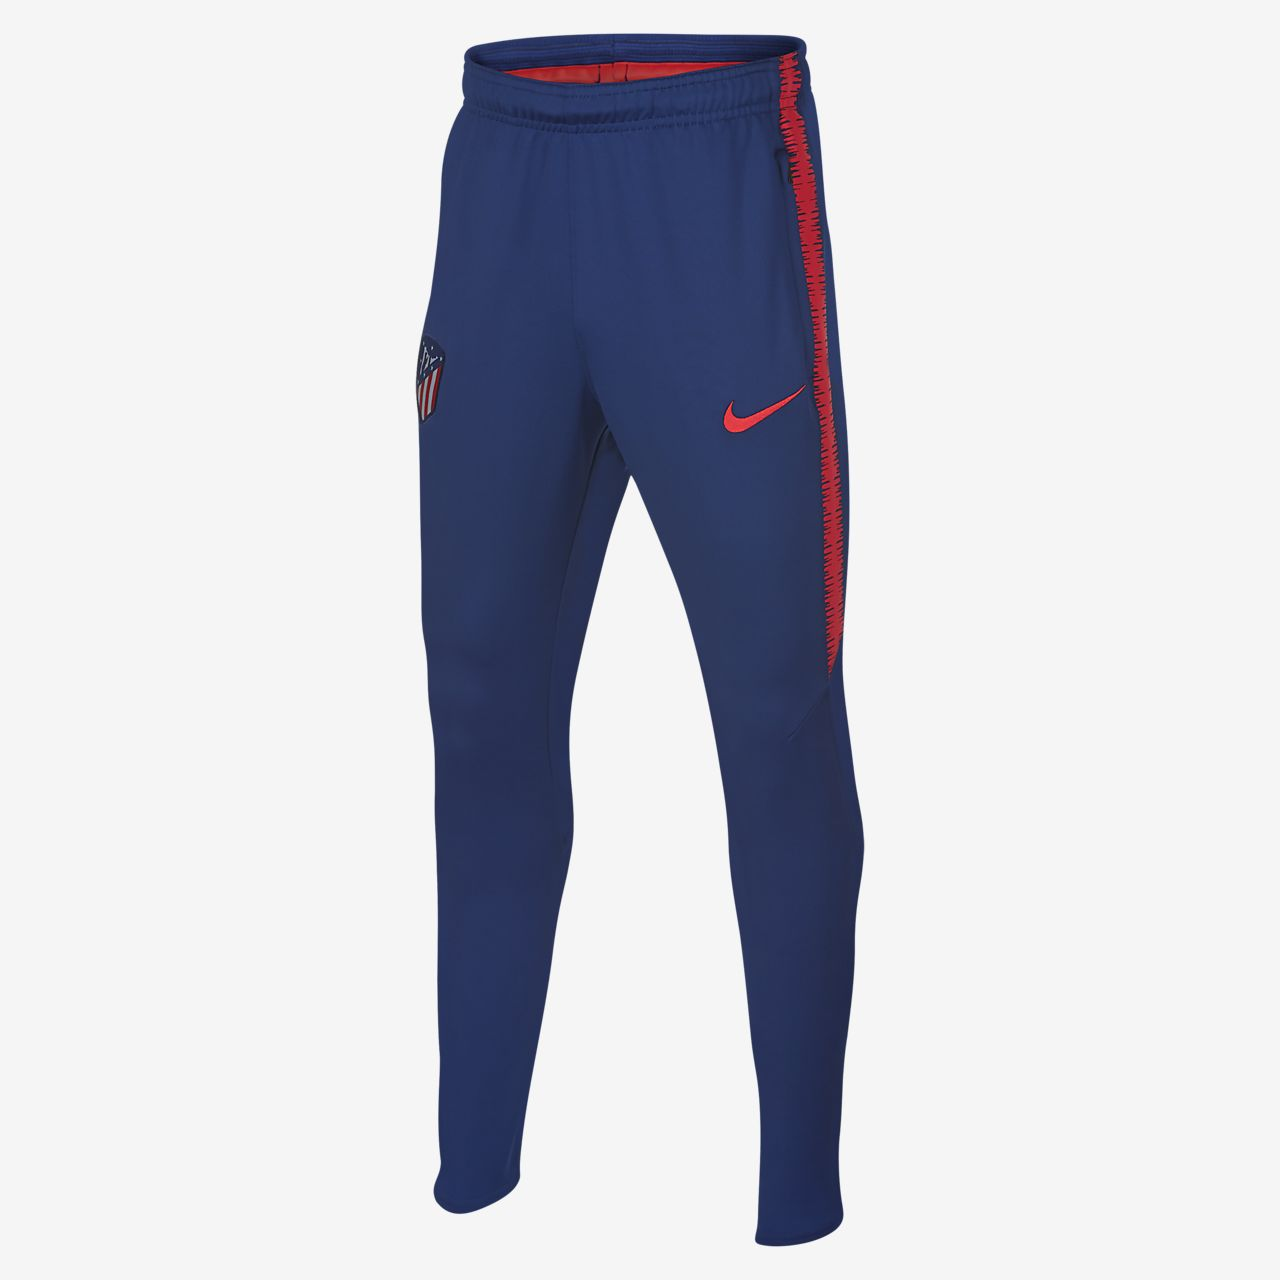 Pantalon de football Atletico de Madrid Dri-FIT Squad pour Enfant plus âgé